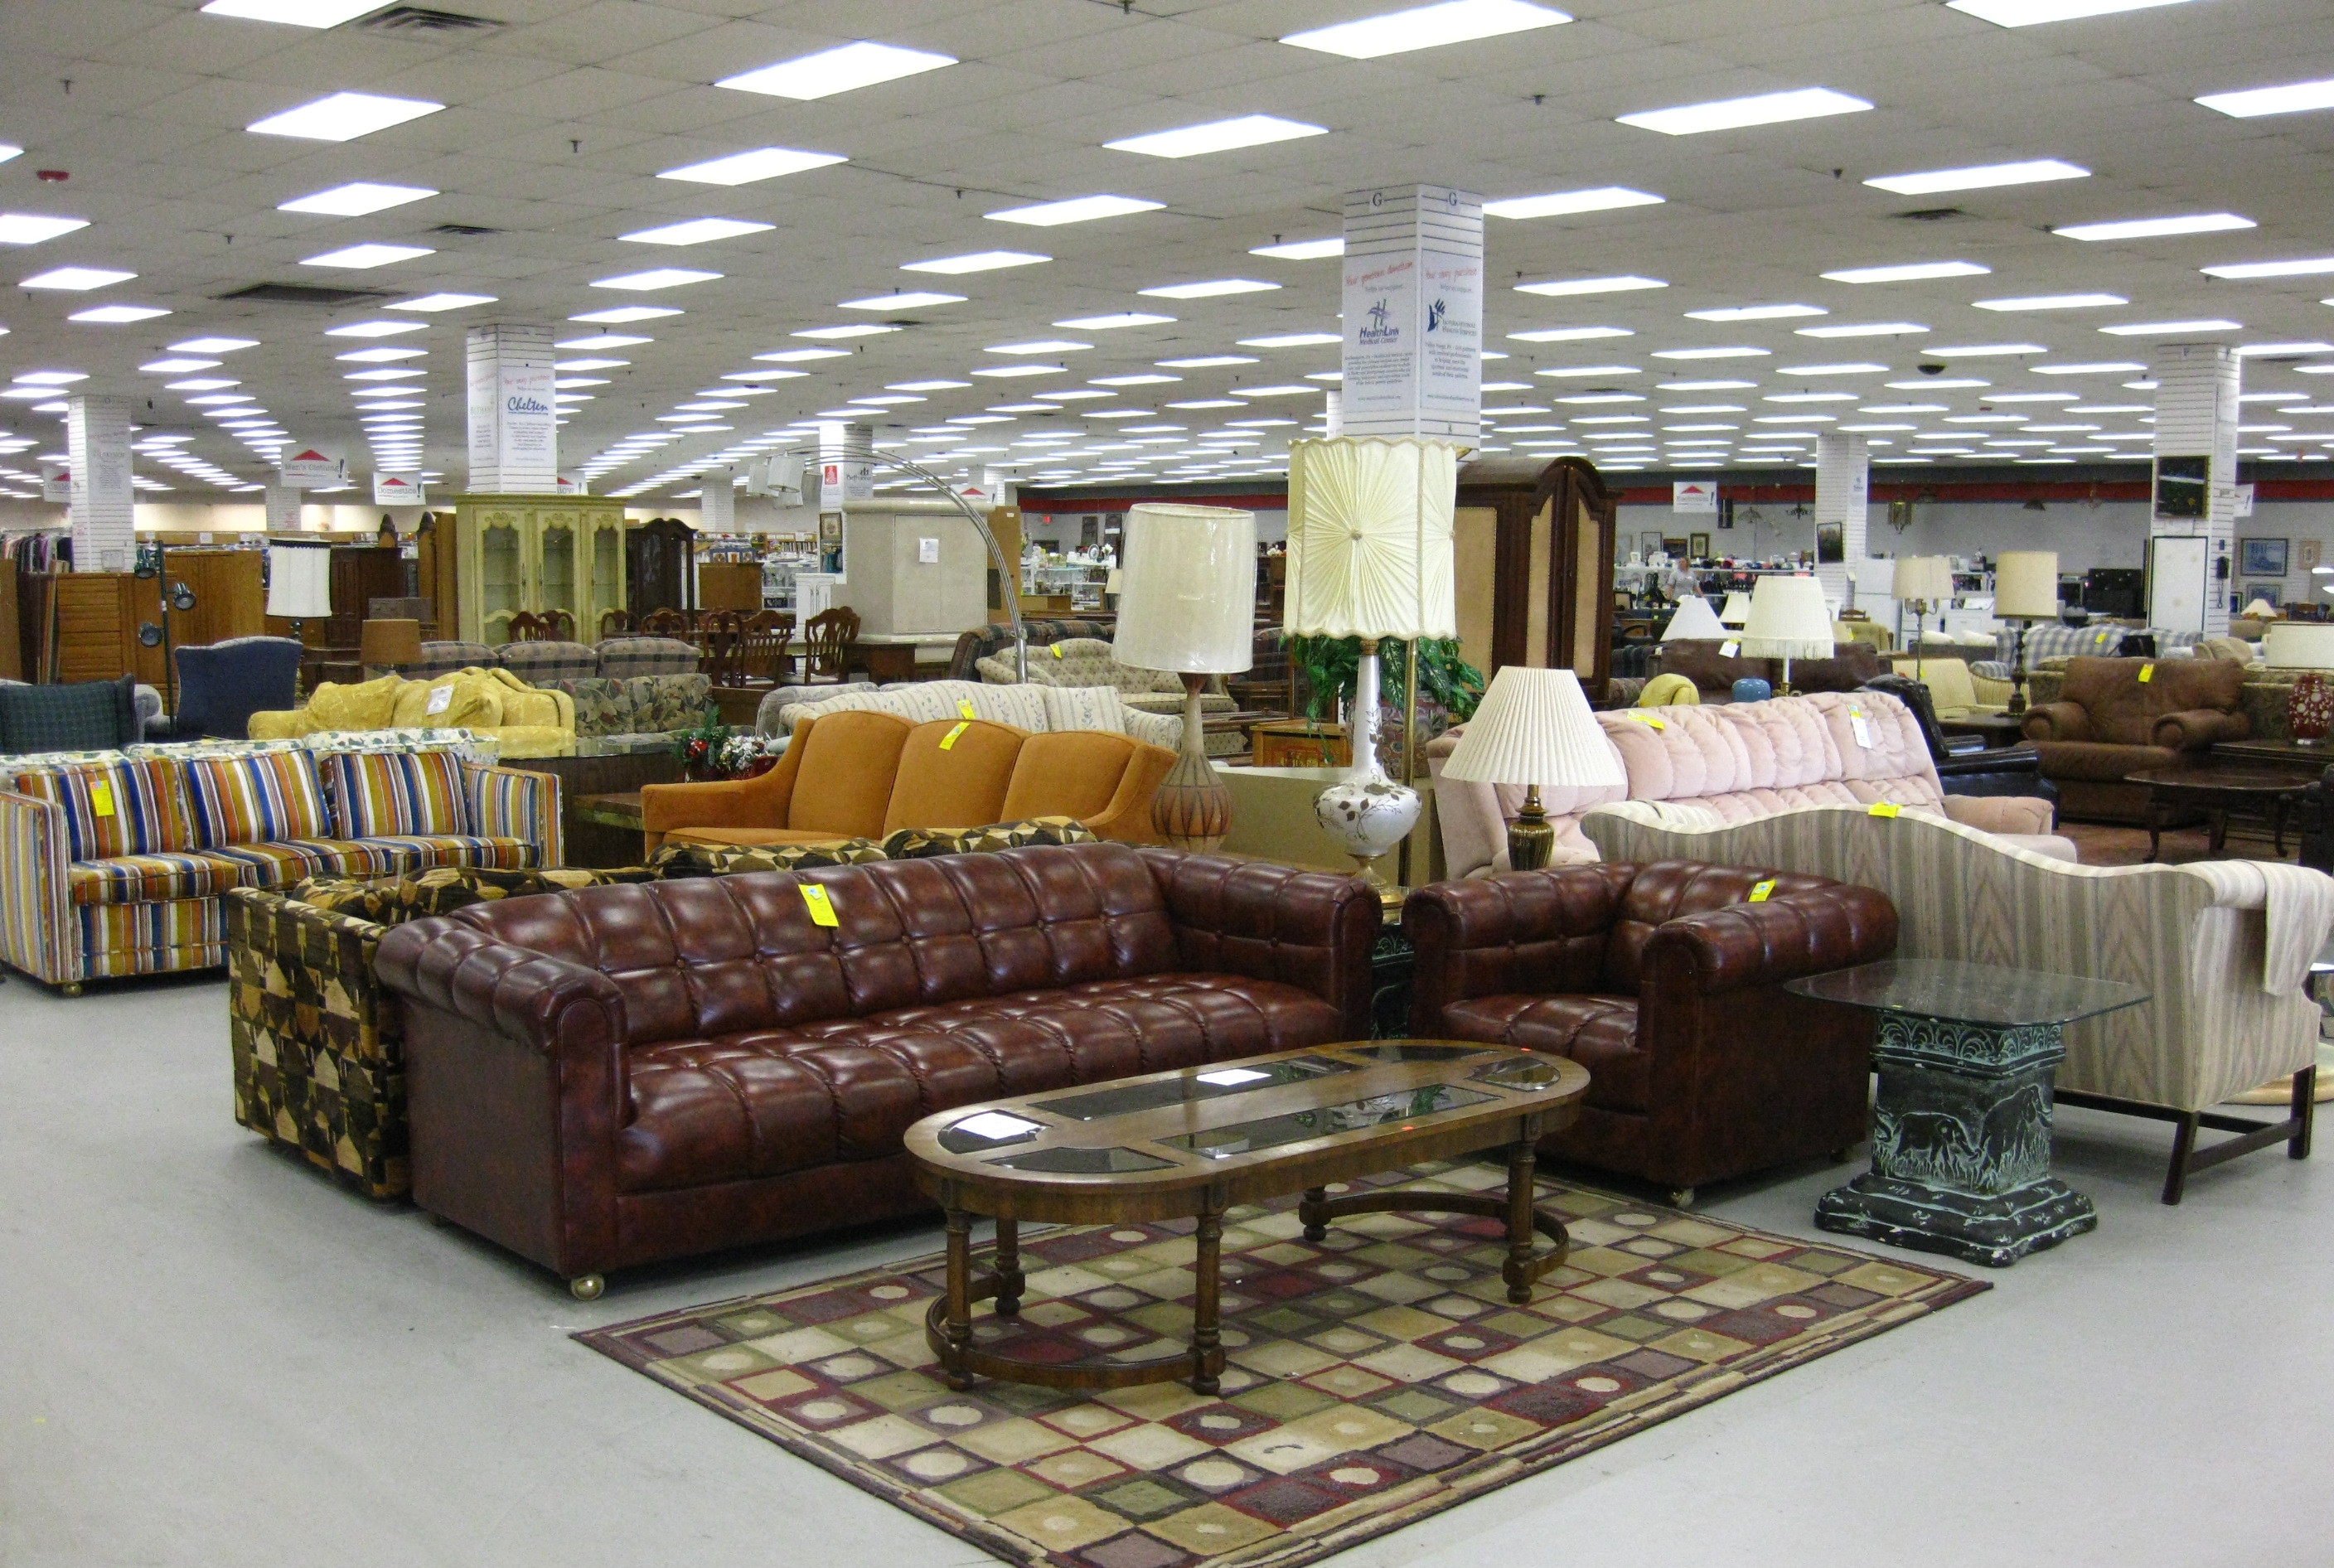 Furniture Stores Warehouse Impact Thrift Stores Montgomery County Pa Page 9